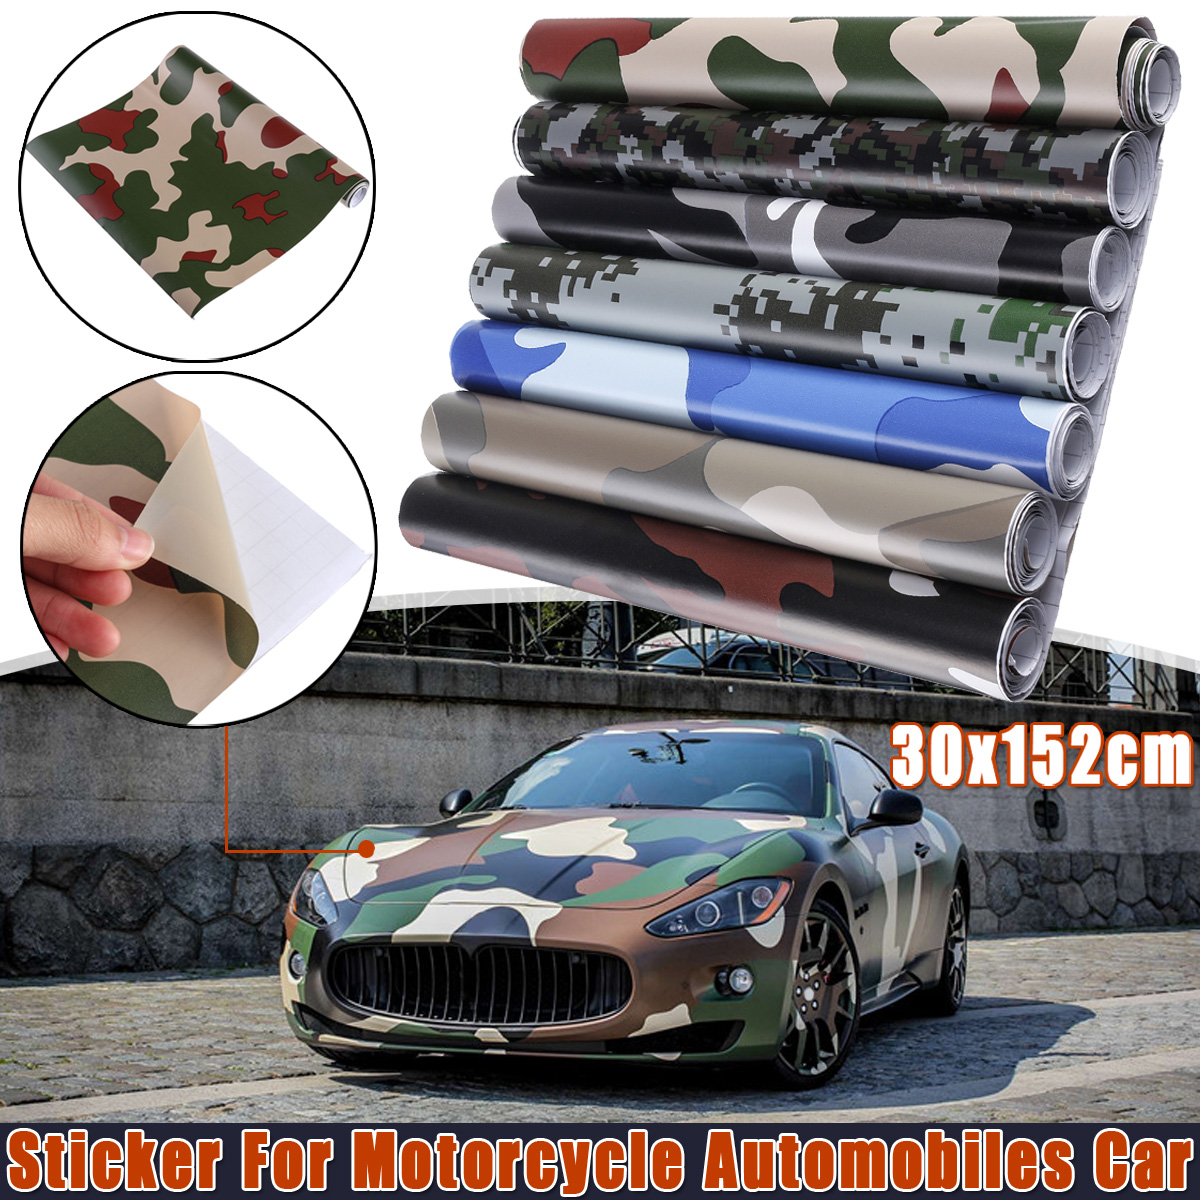 DIY Snow <font><b>Camouflage</b></font> Vinyl Film Car Wraper Wrapping Skin Film Car <font><b>Stickers</b></font> Decals For Car <font><b>Bike</b></font> Computer Laptop Scooter Motorcycle image